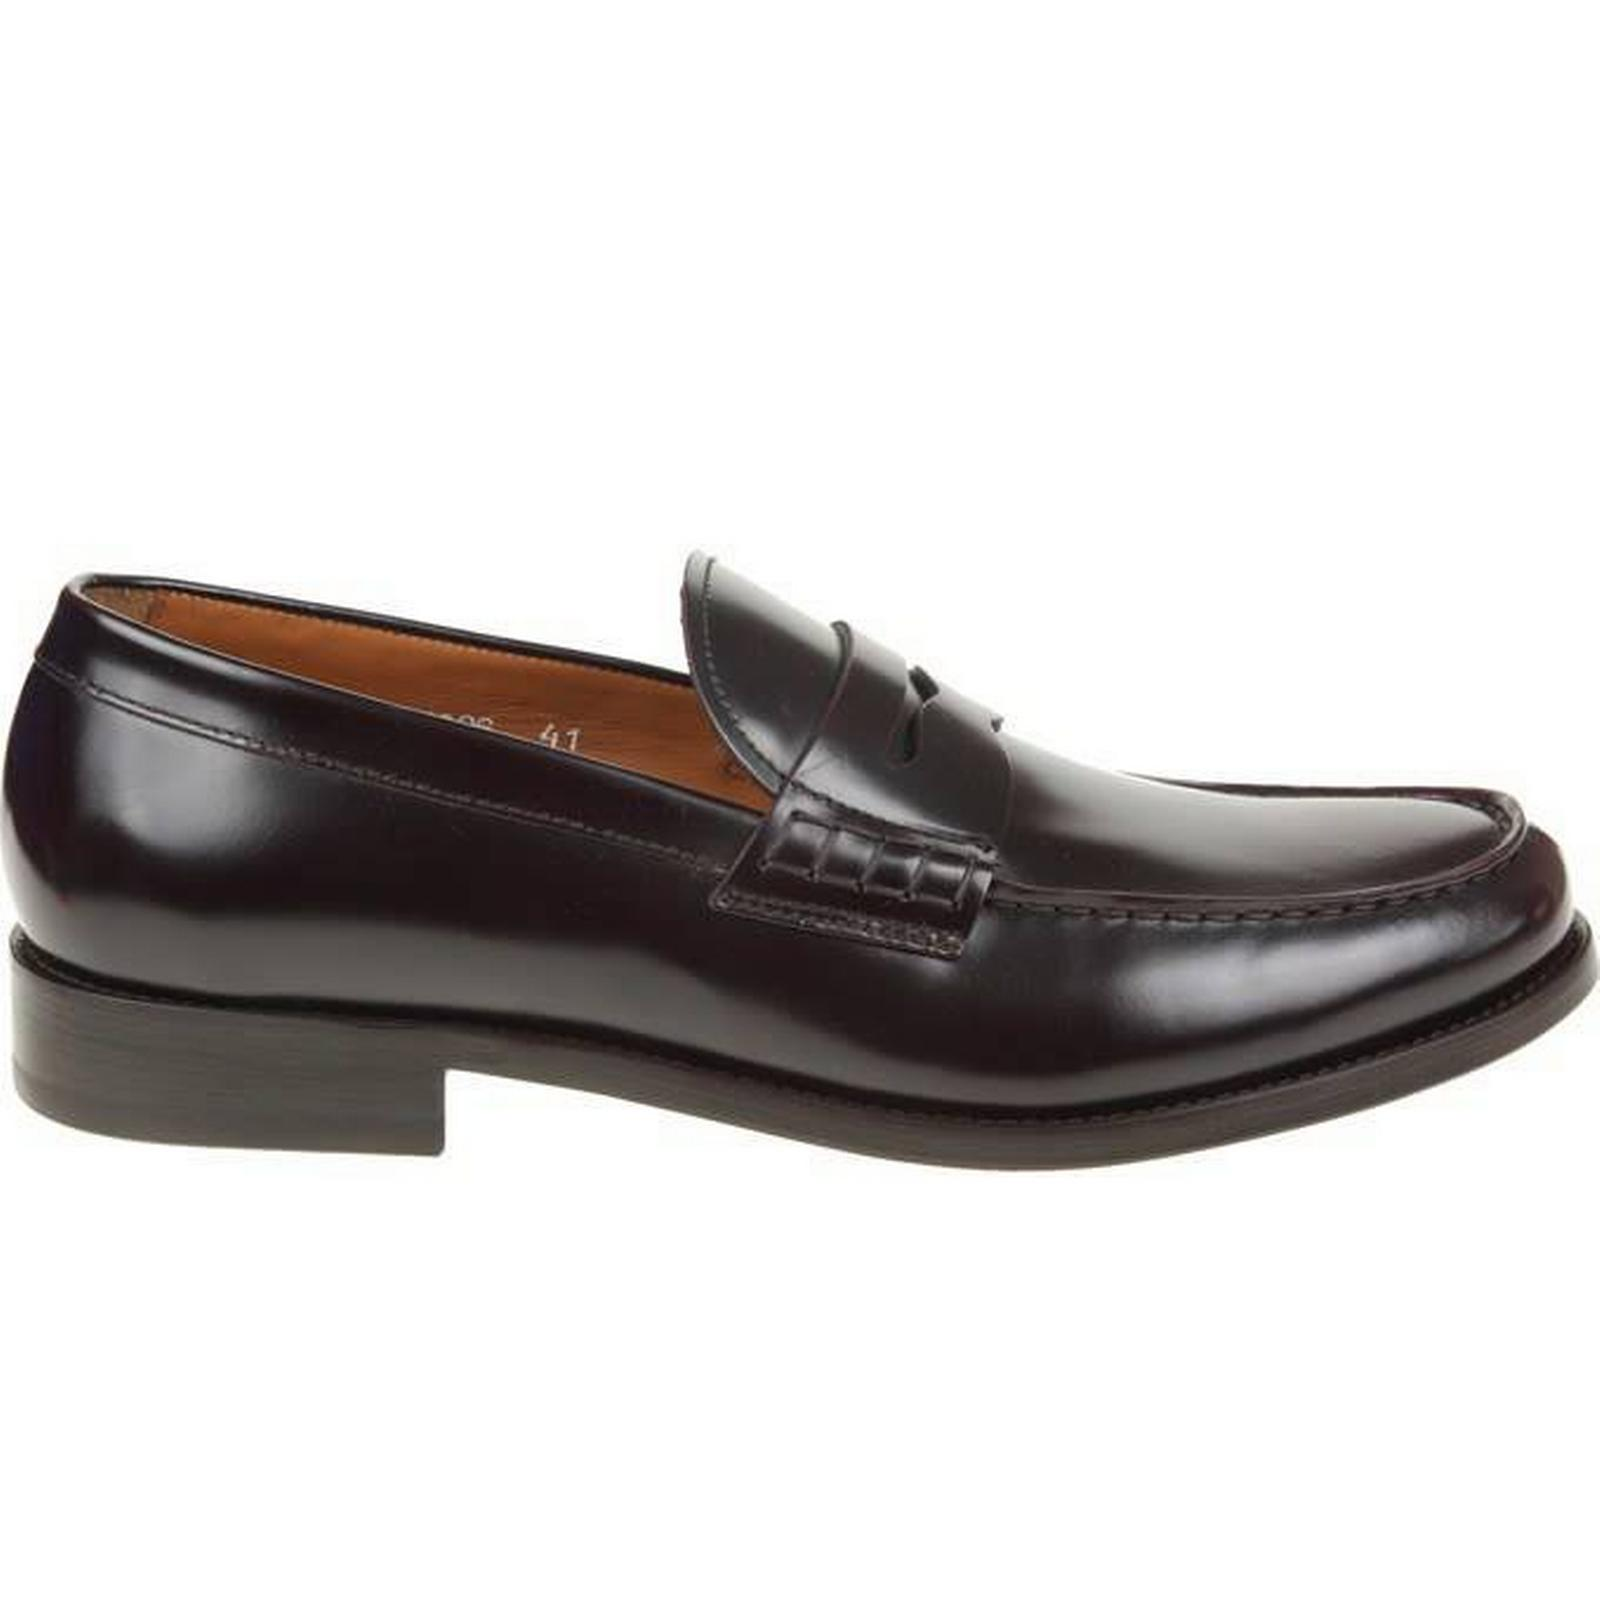 Doucal's Shoes Shoes Doucal's In Skin Color Burgundy d5821a